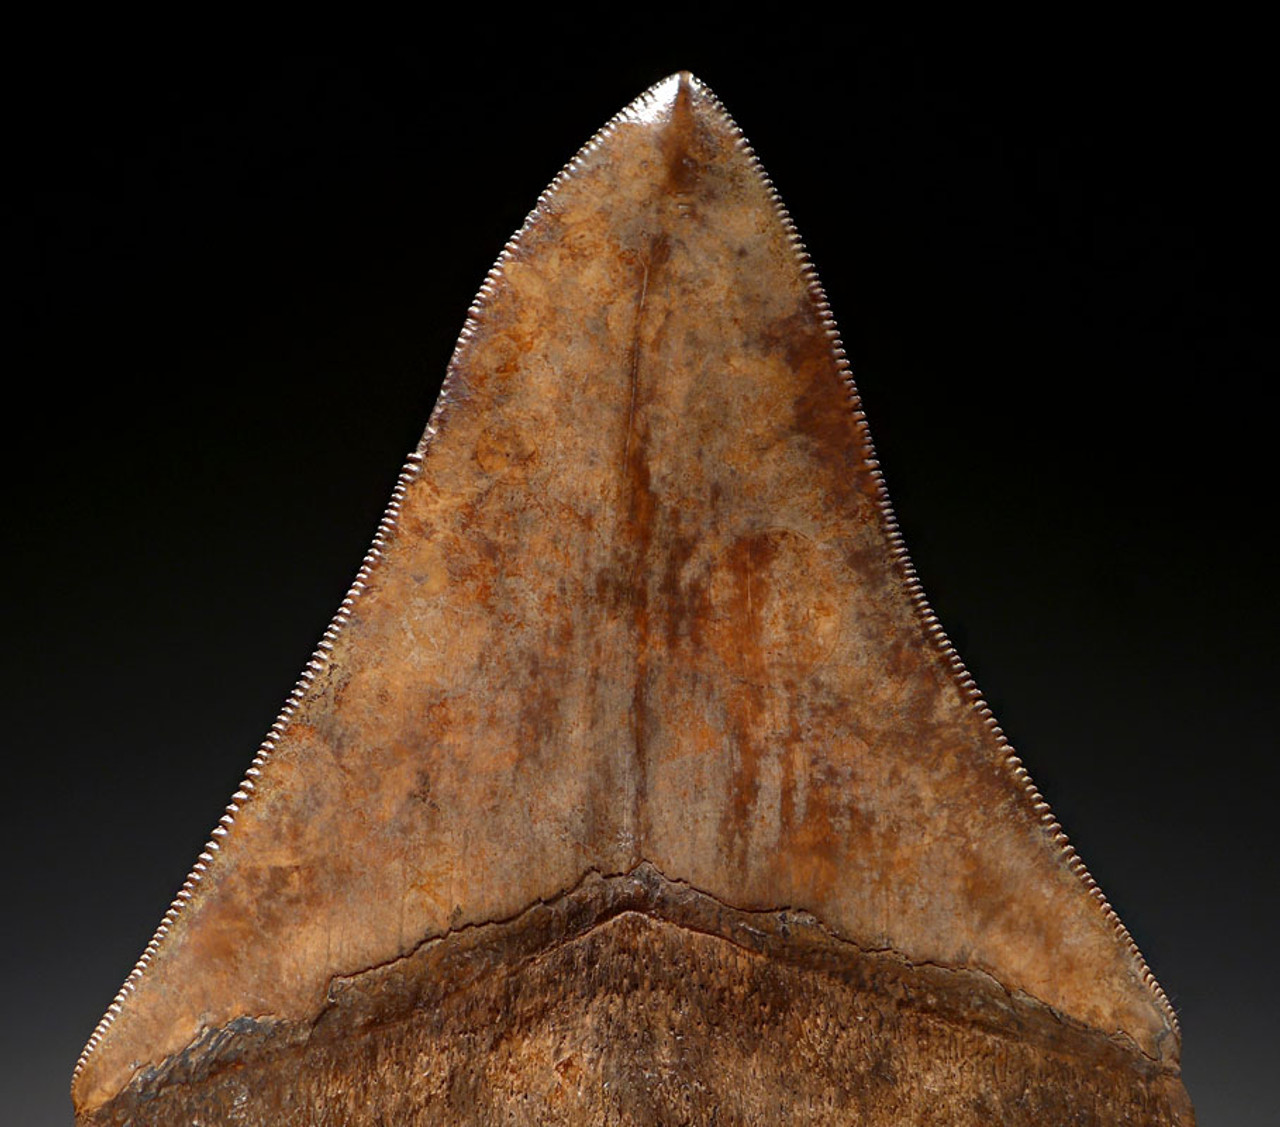 SH6-326 - COLLECTOR GRADE 4.4 INCH MEGALODON SHARK TOOTH WITH STUNNING MOTTLED COPPER ENAMEL